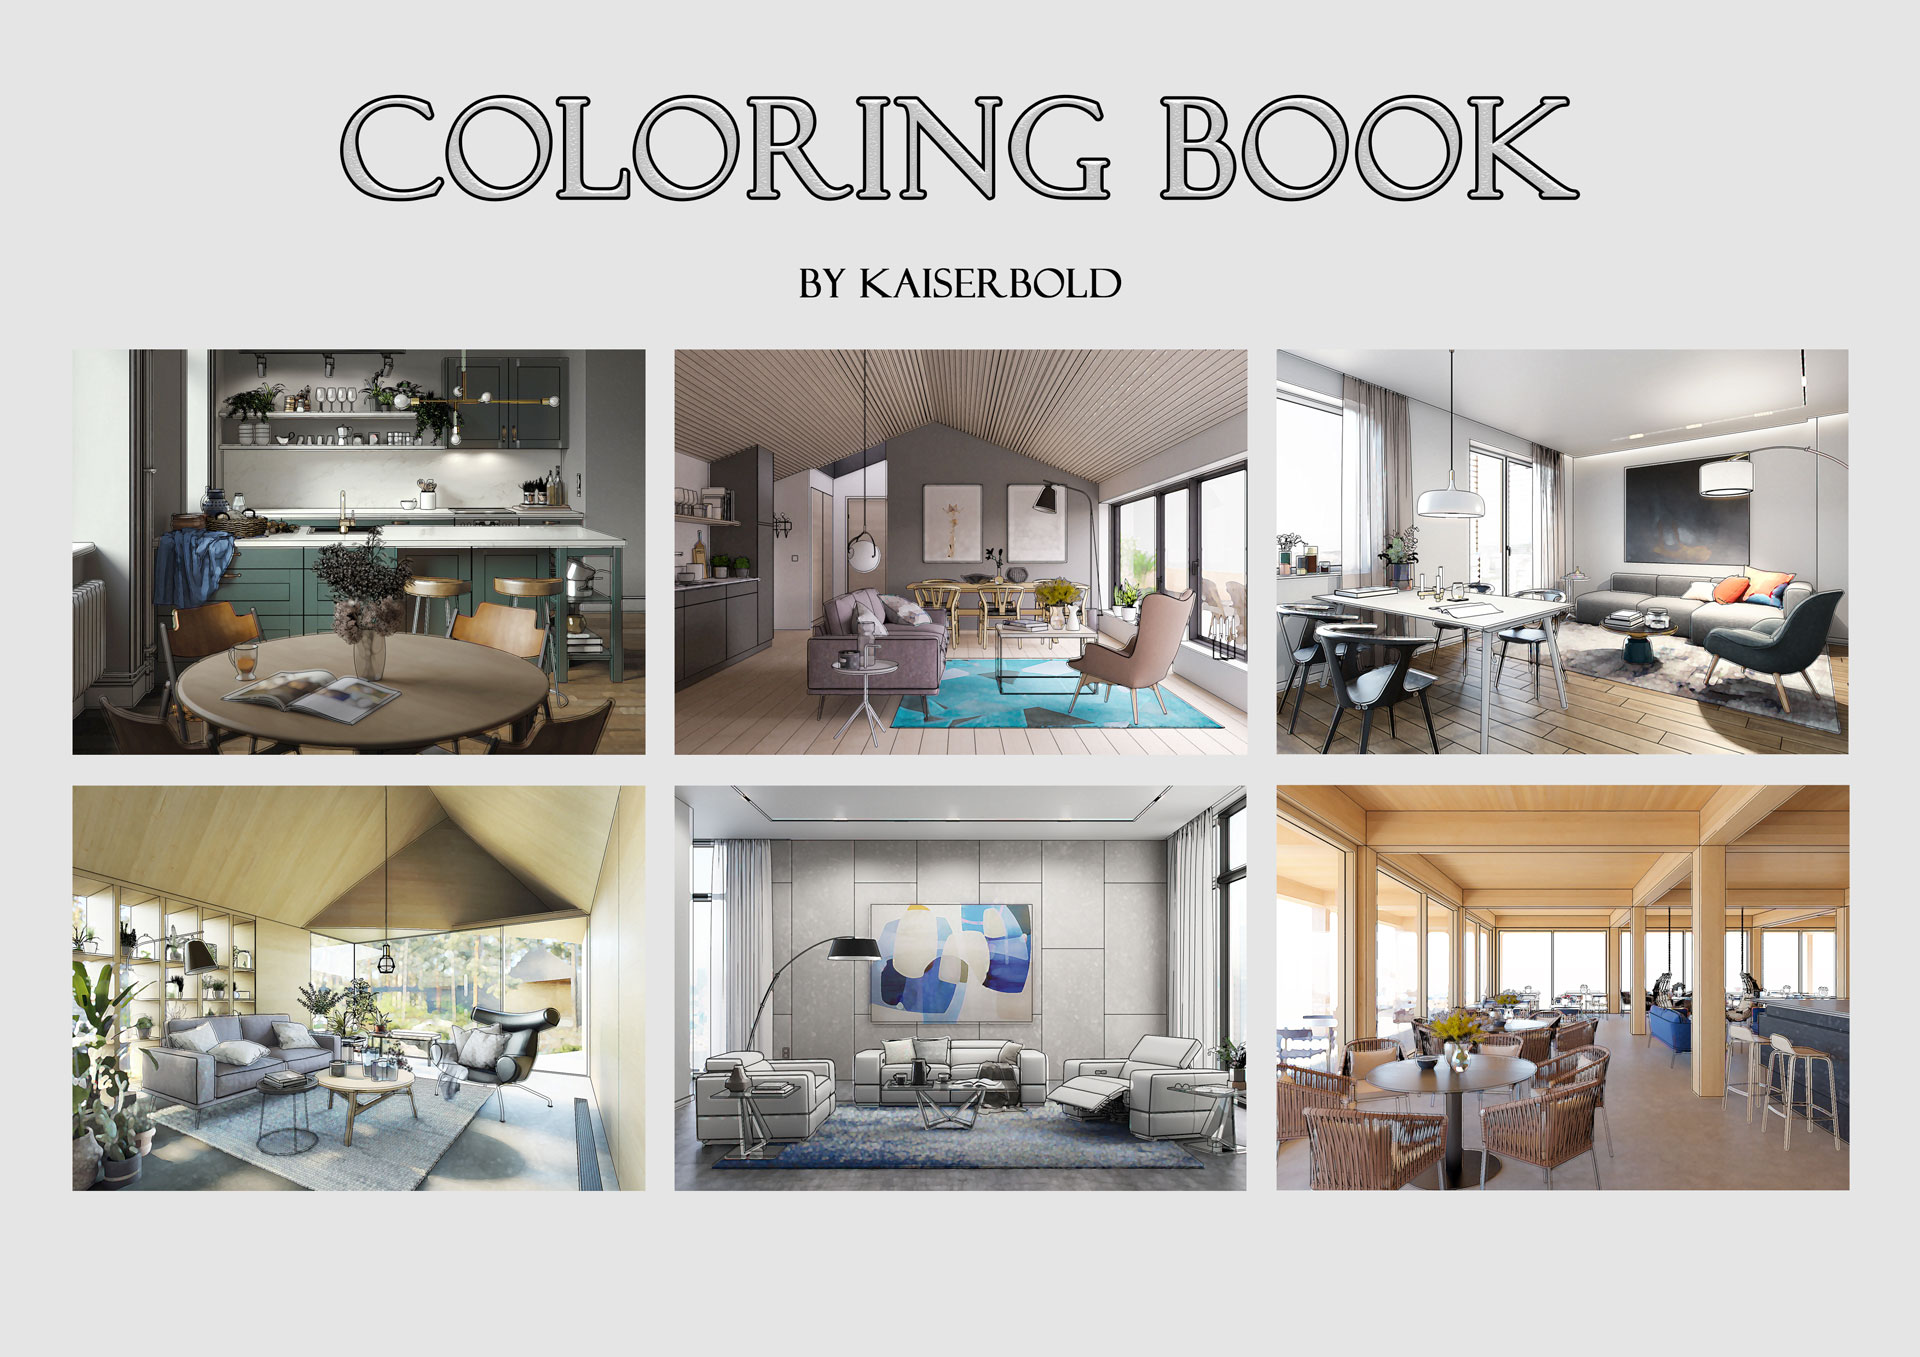 kaiserbold-coloring-book-interiors-preview-color-1920px